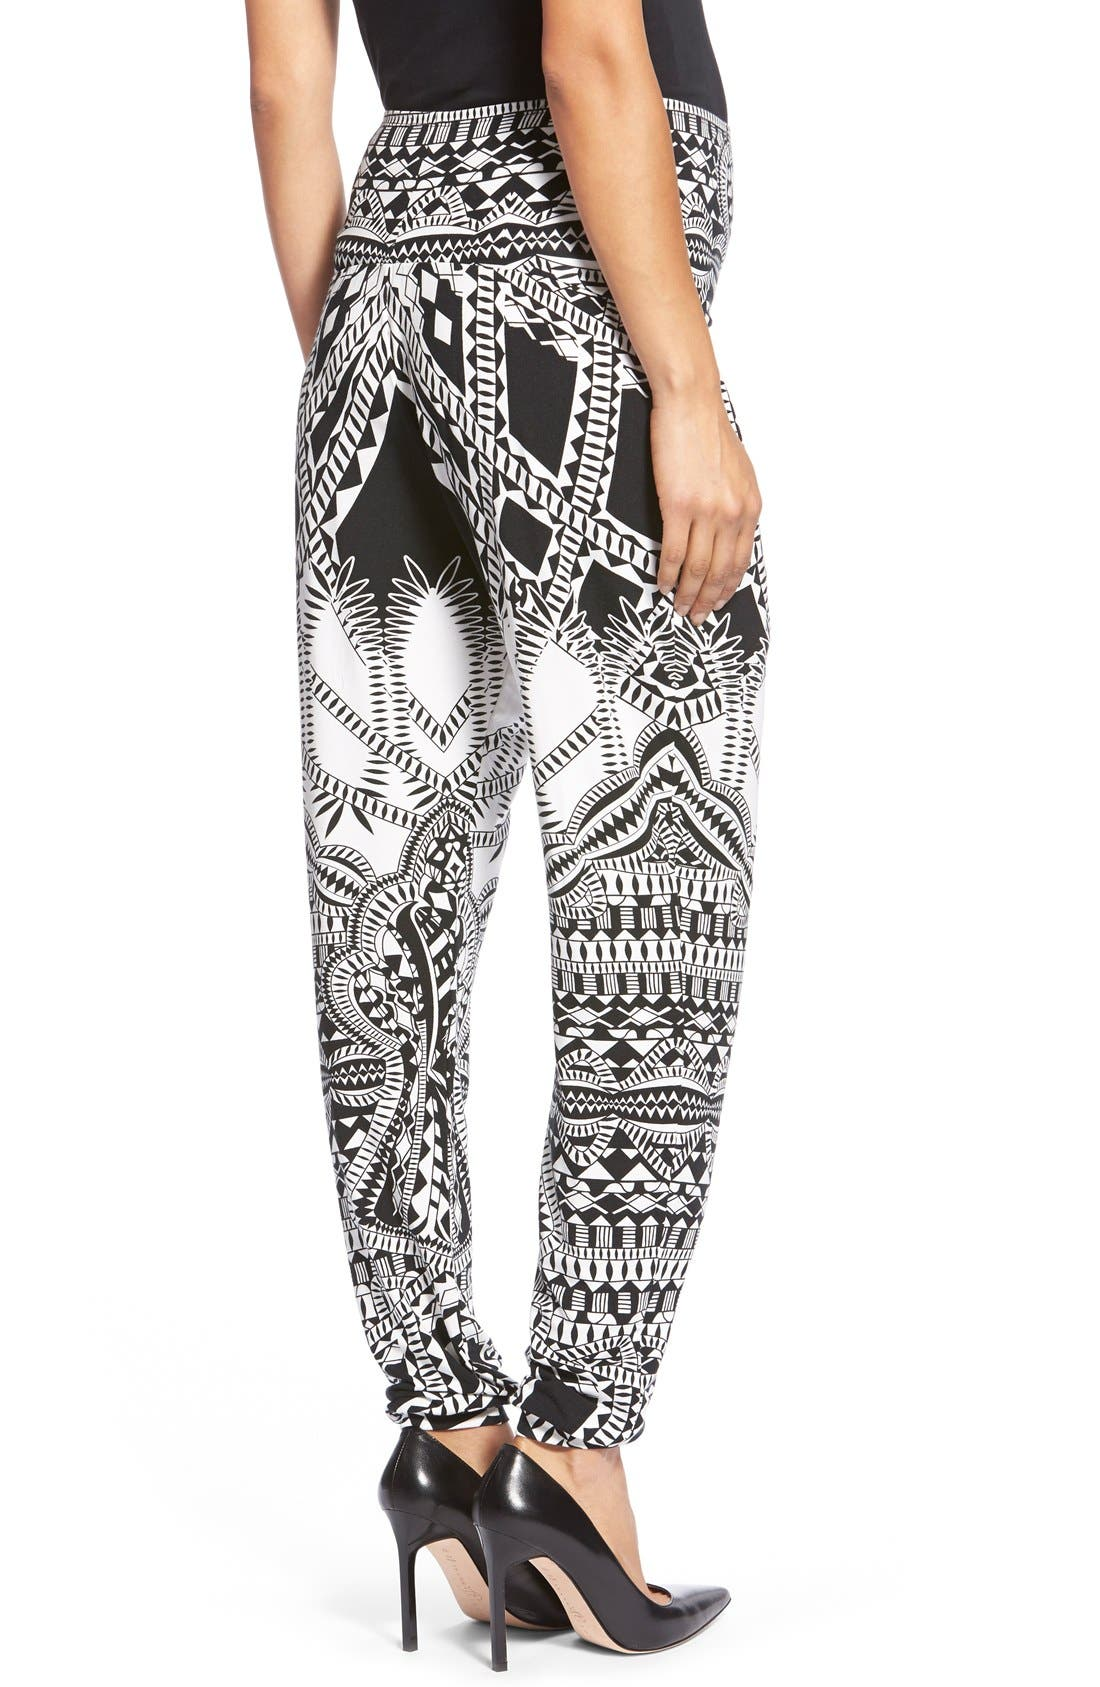 Liviana Tapered Maternity Pants,                             Alternate thumbnail 4, color,                             TRIBAL PLACEMENT